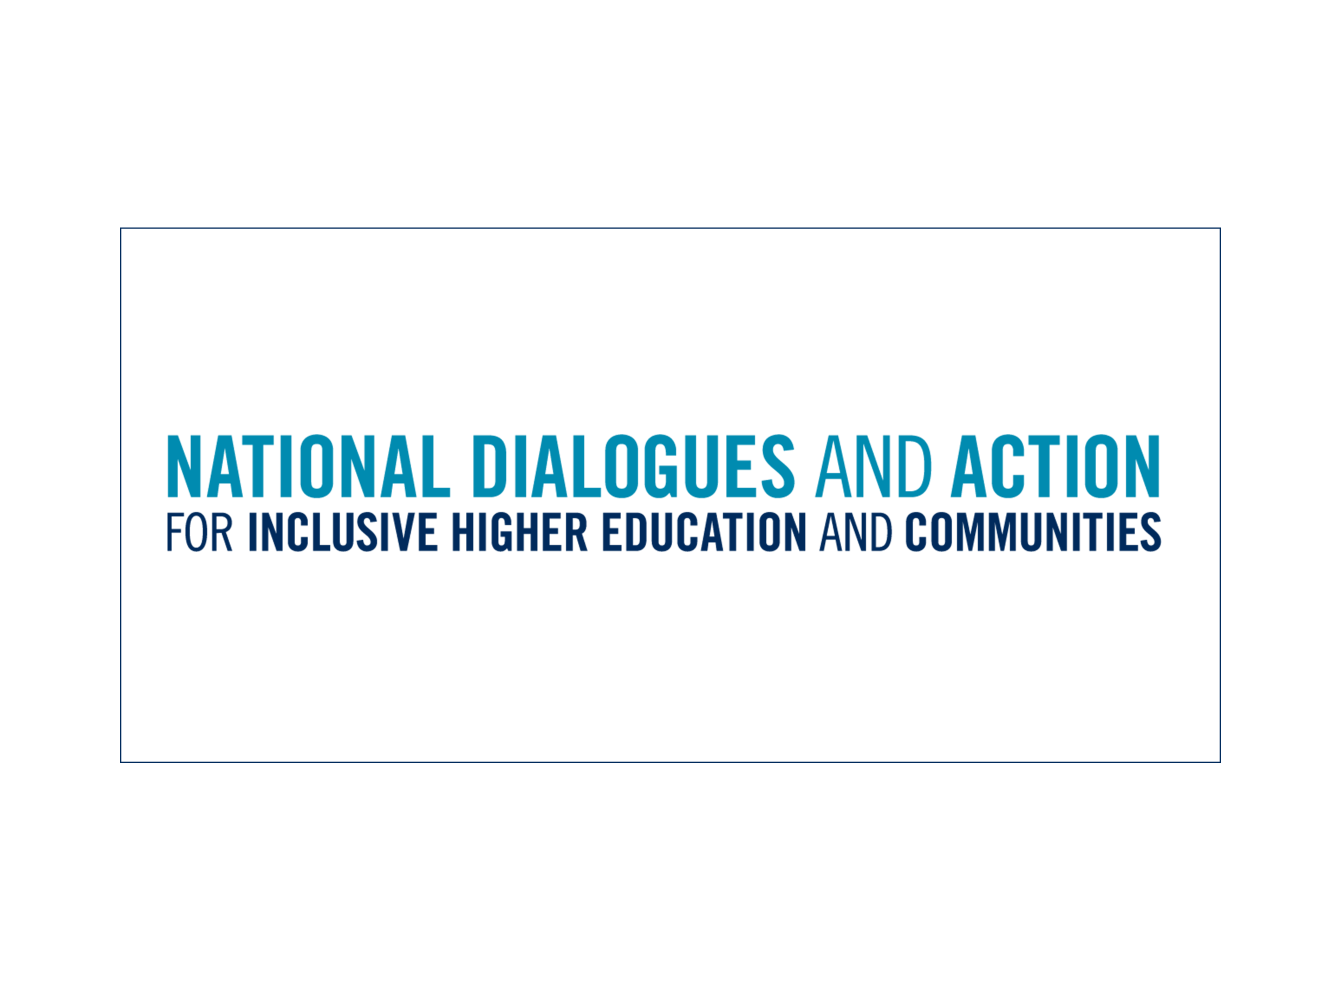 National Dialogues and Action for Inclusive Higher Education and Communities wordmark.